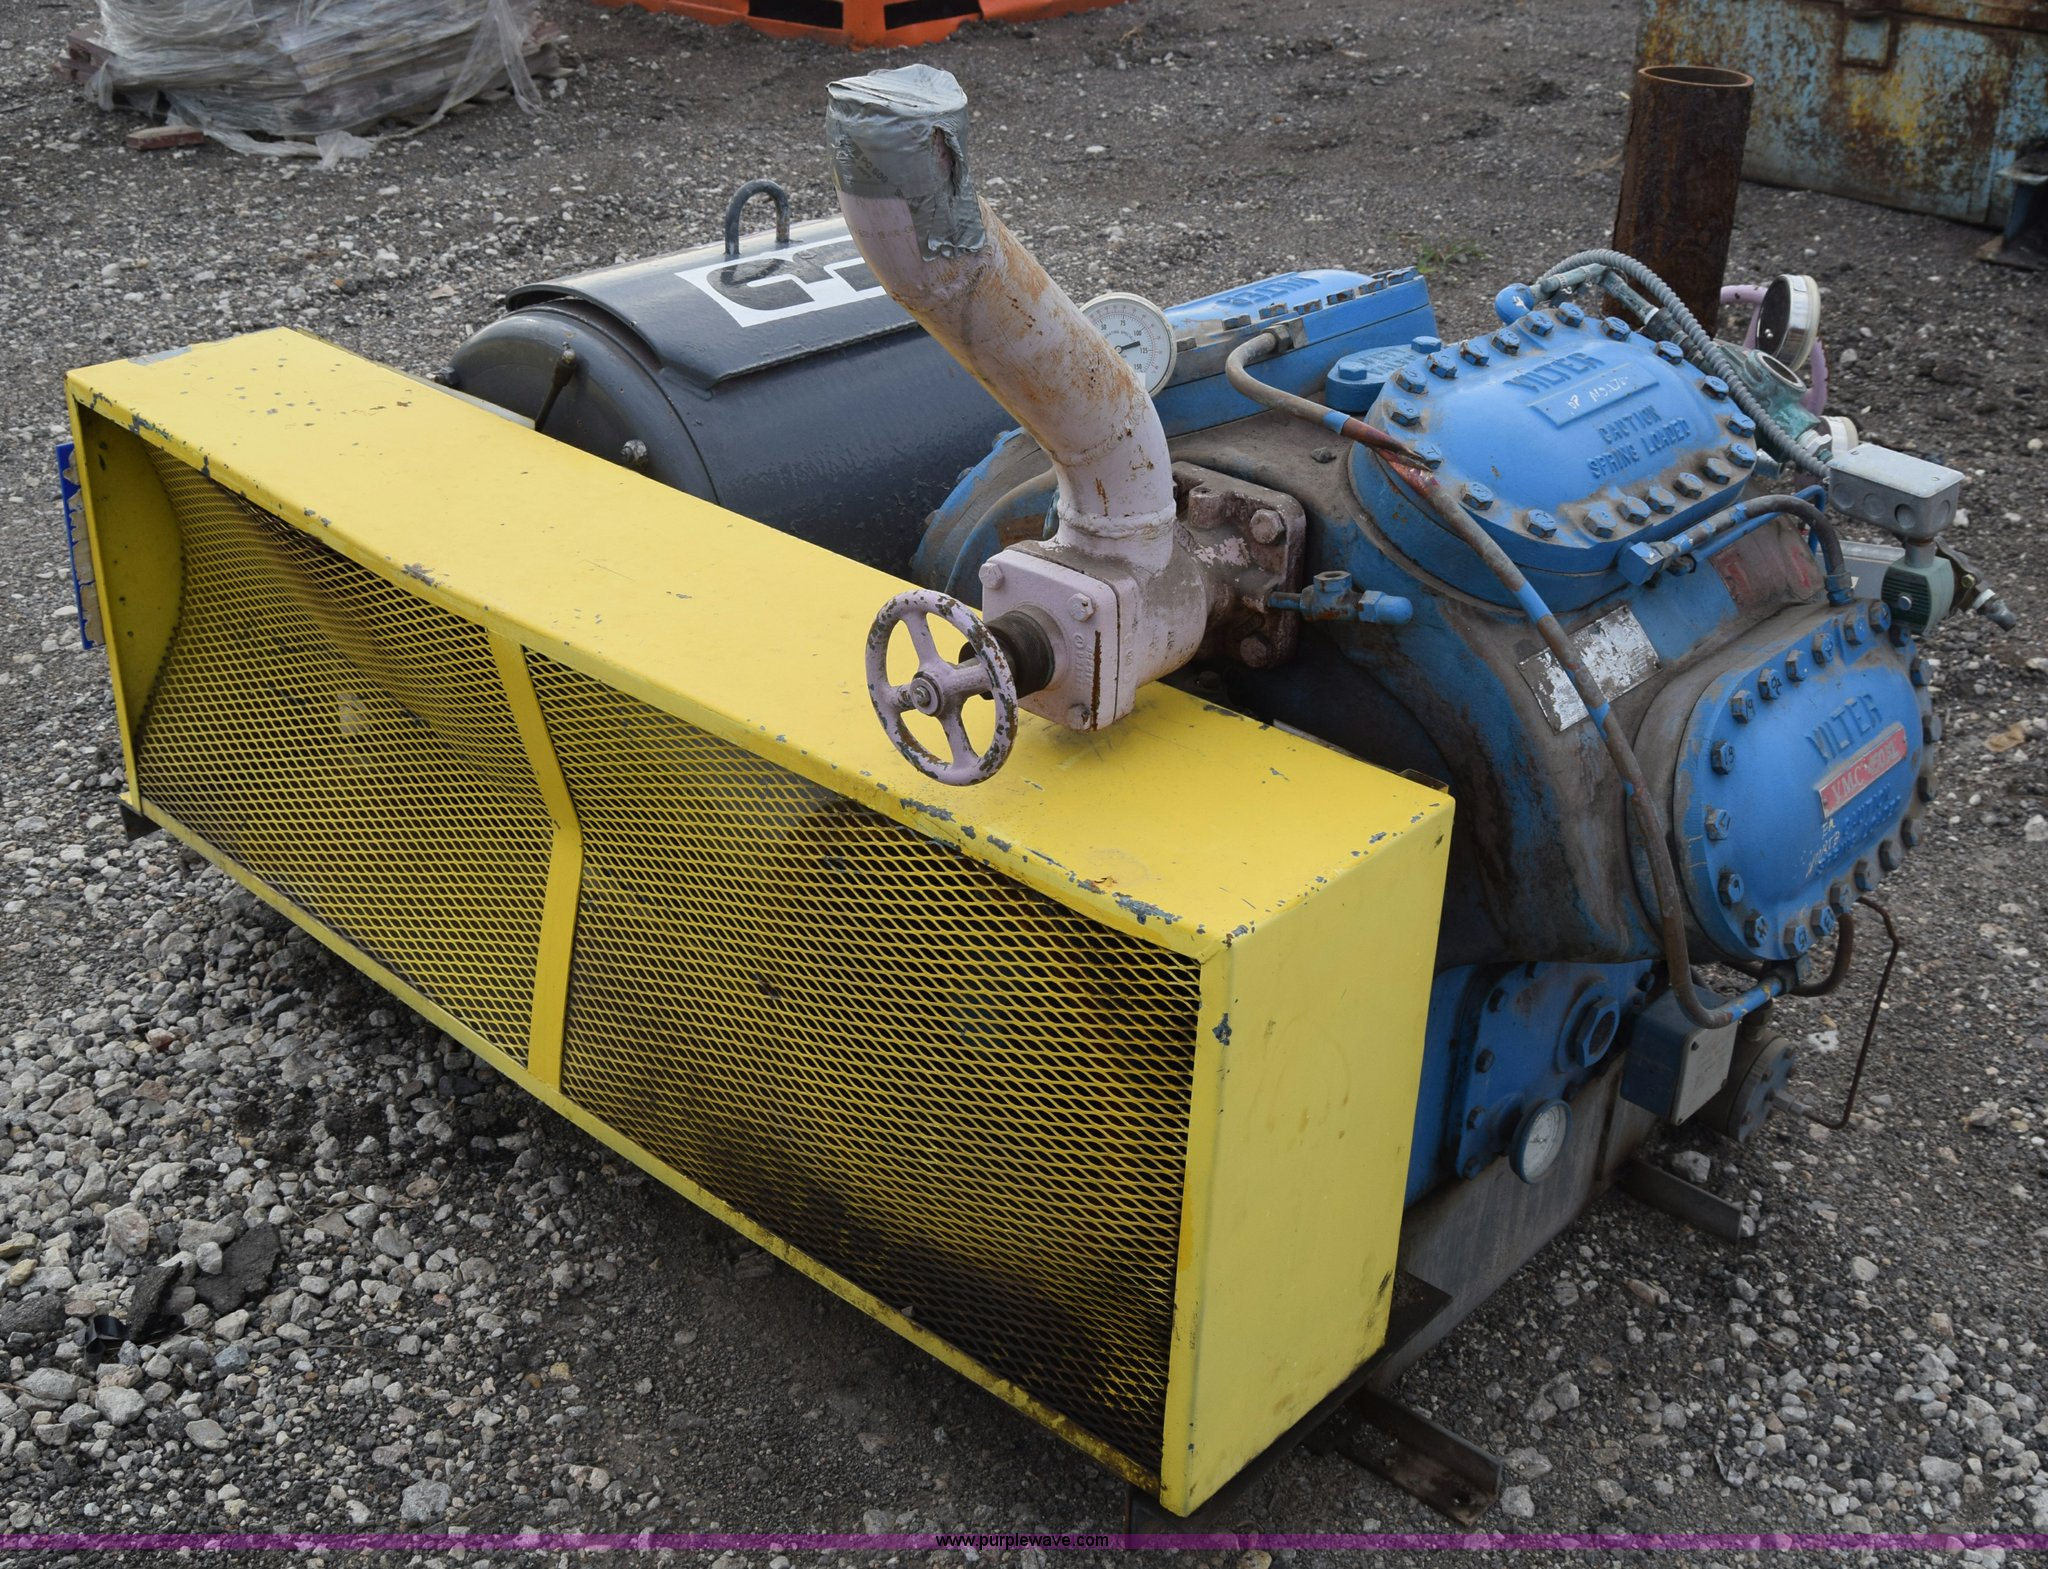 J7151 image for item J7151 Vilter VMC450 reciprocating compressor